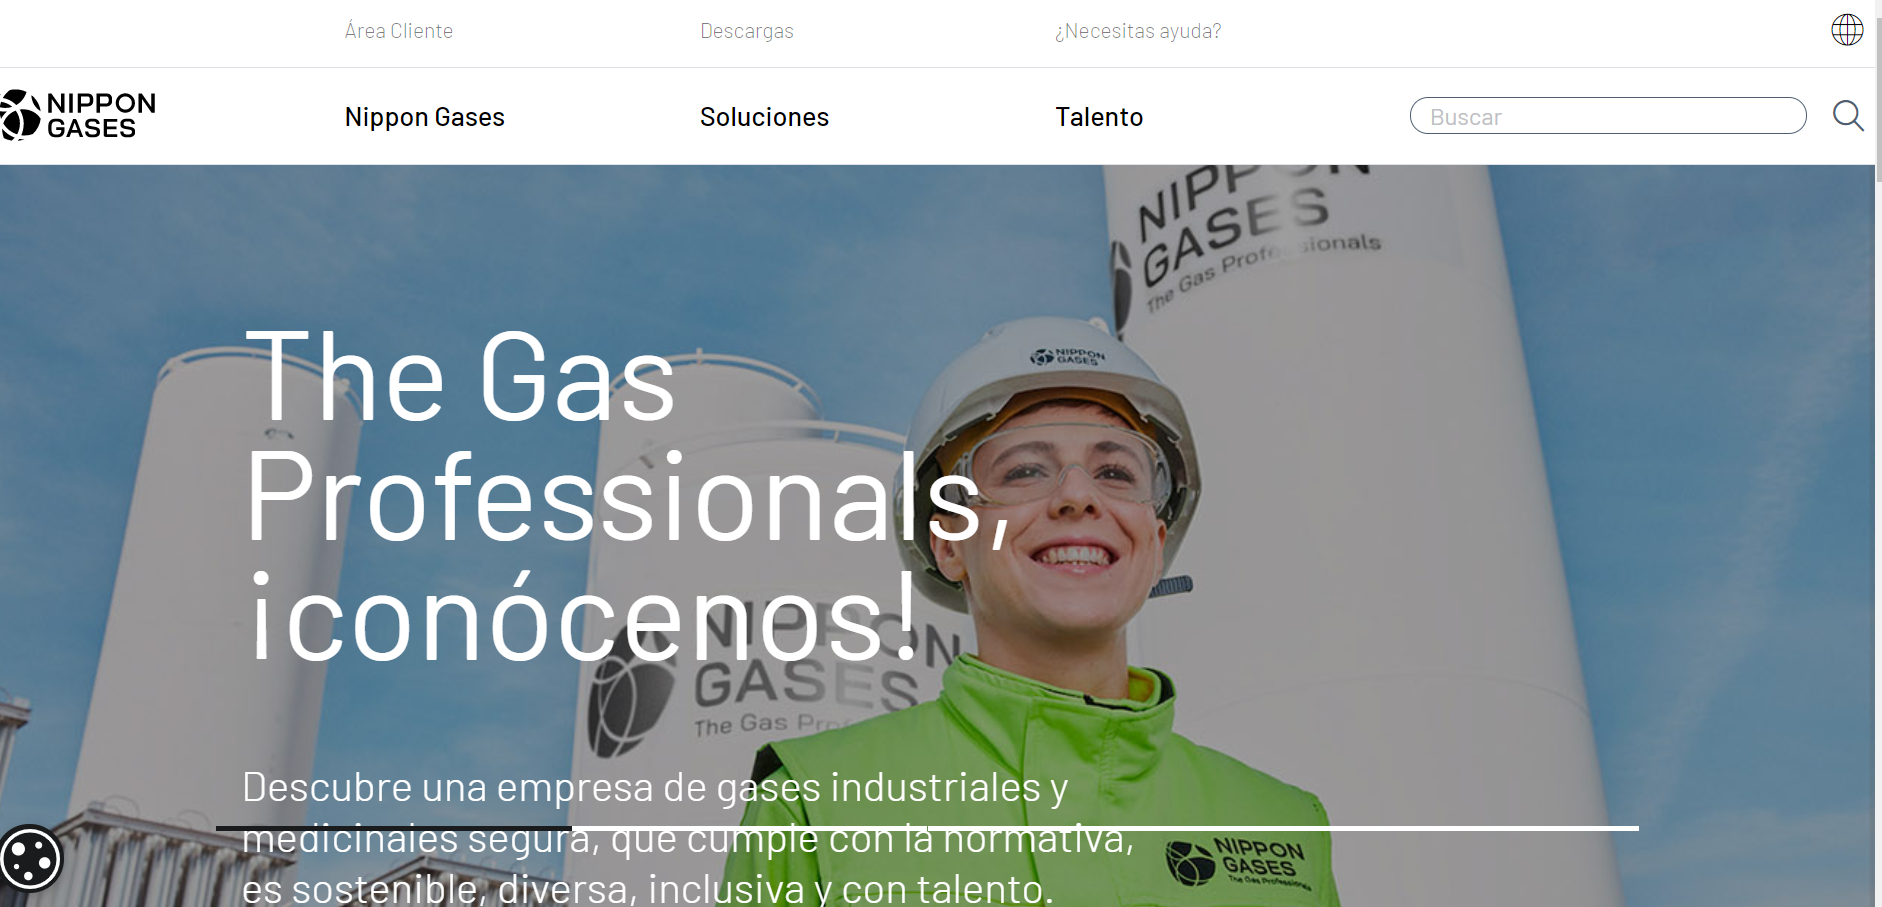 Nippon Gases launches new website